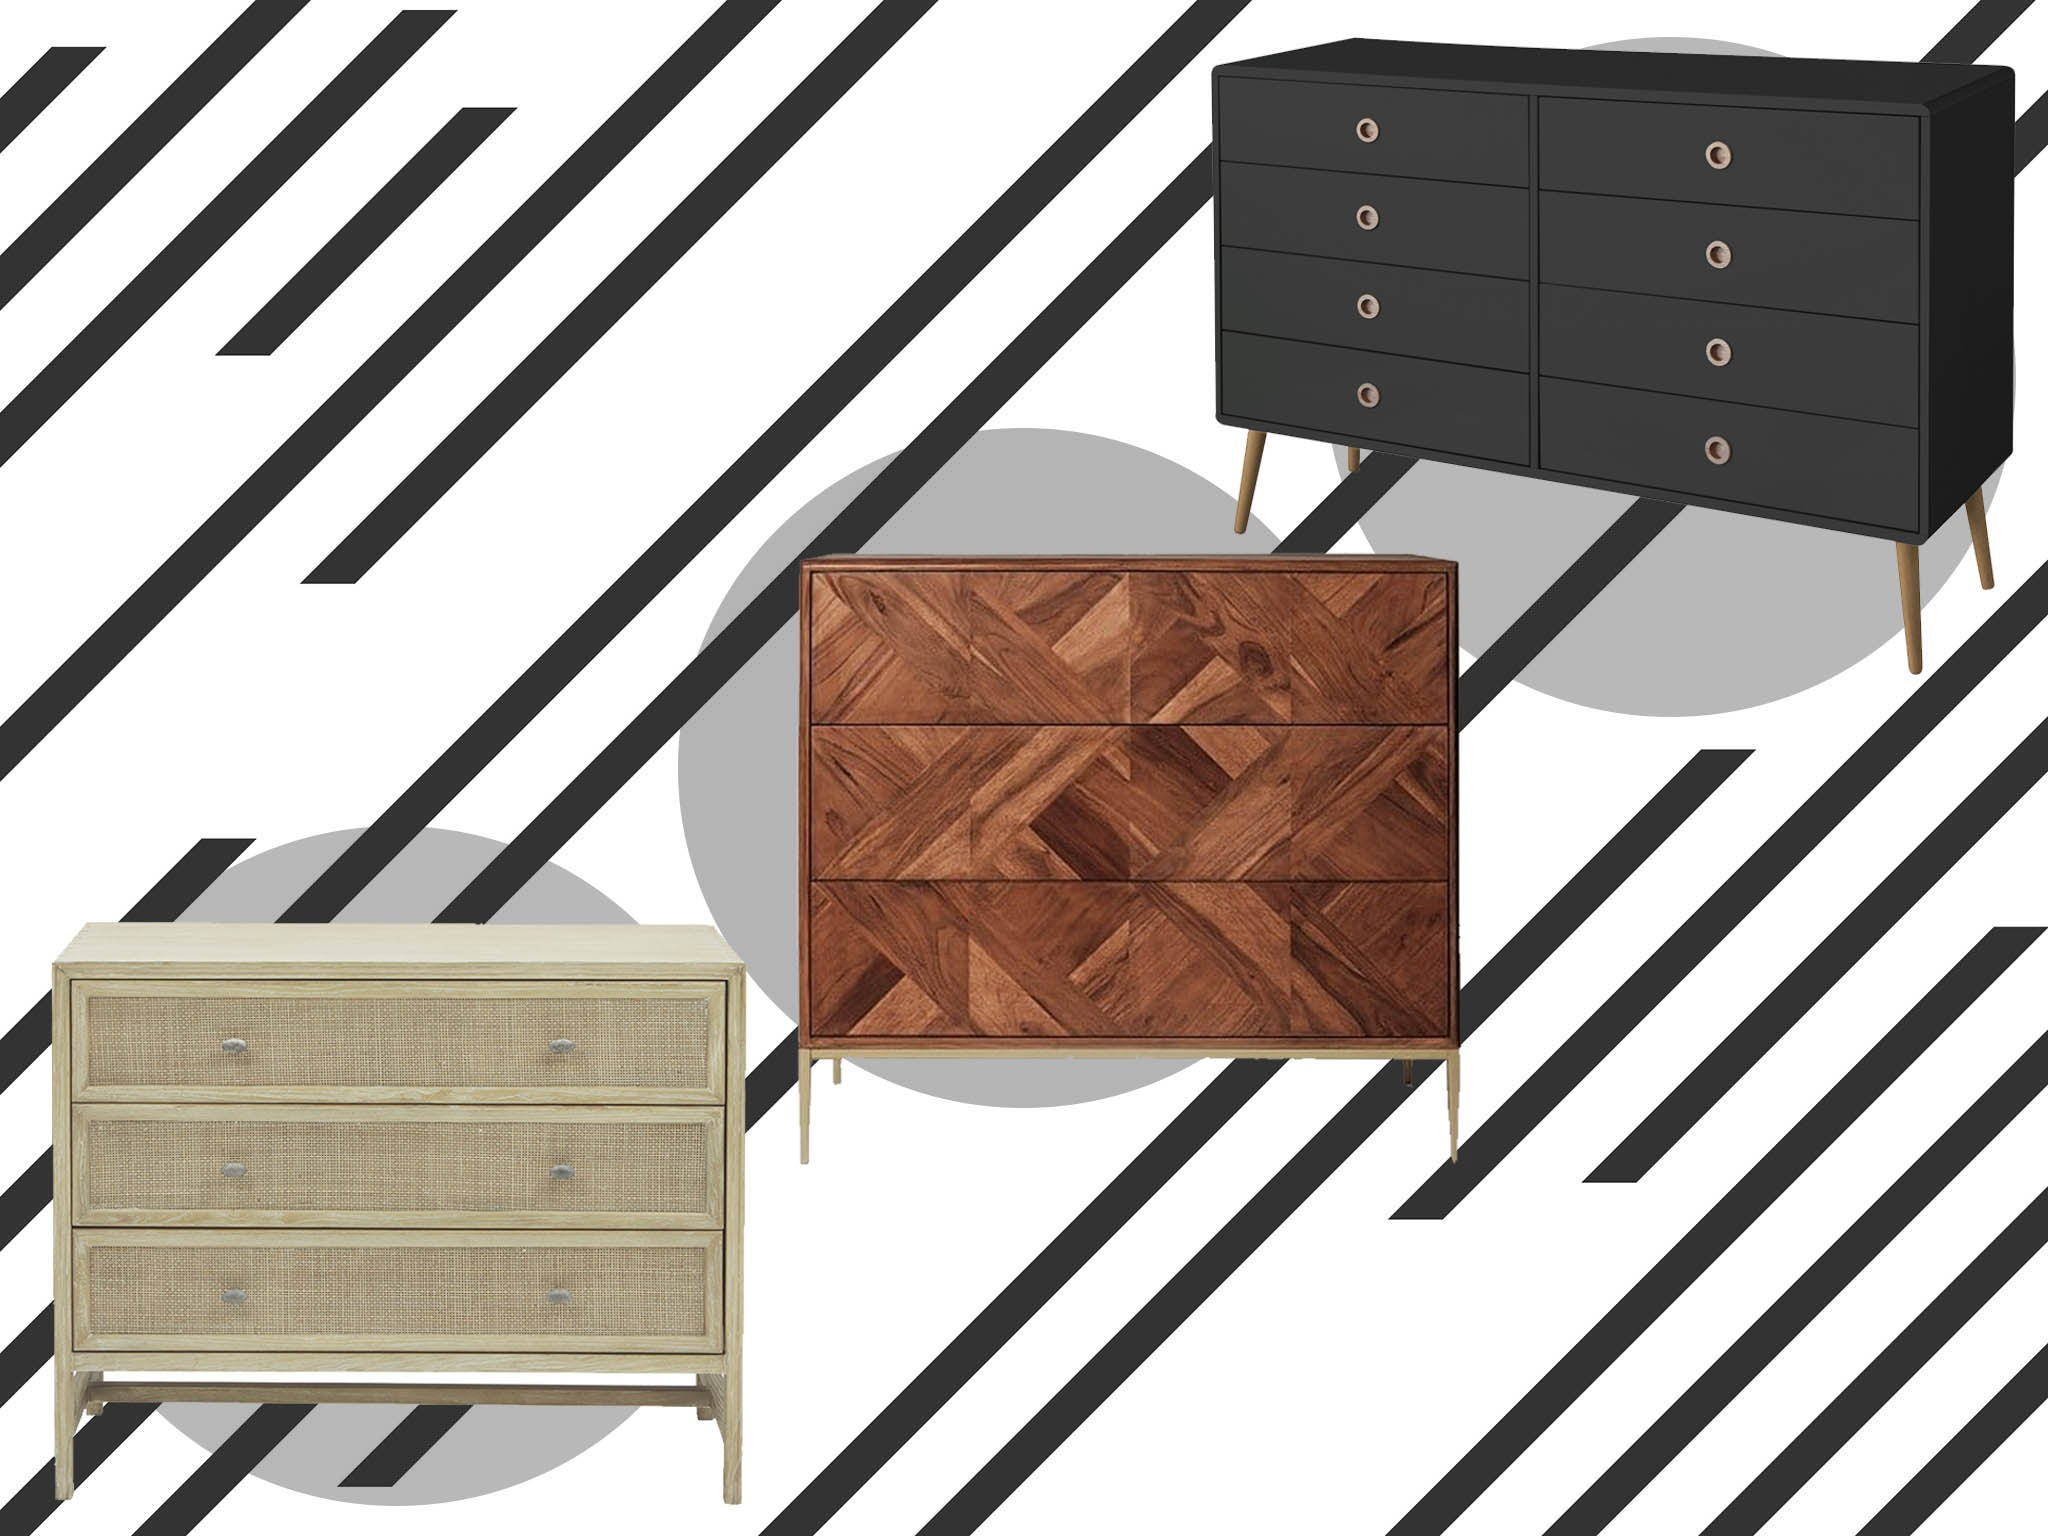 Best Chest Of Drawers To Organise Your Clothes In Style The Independent